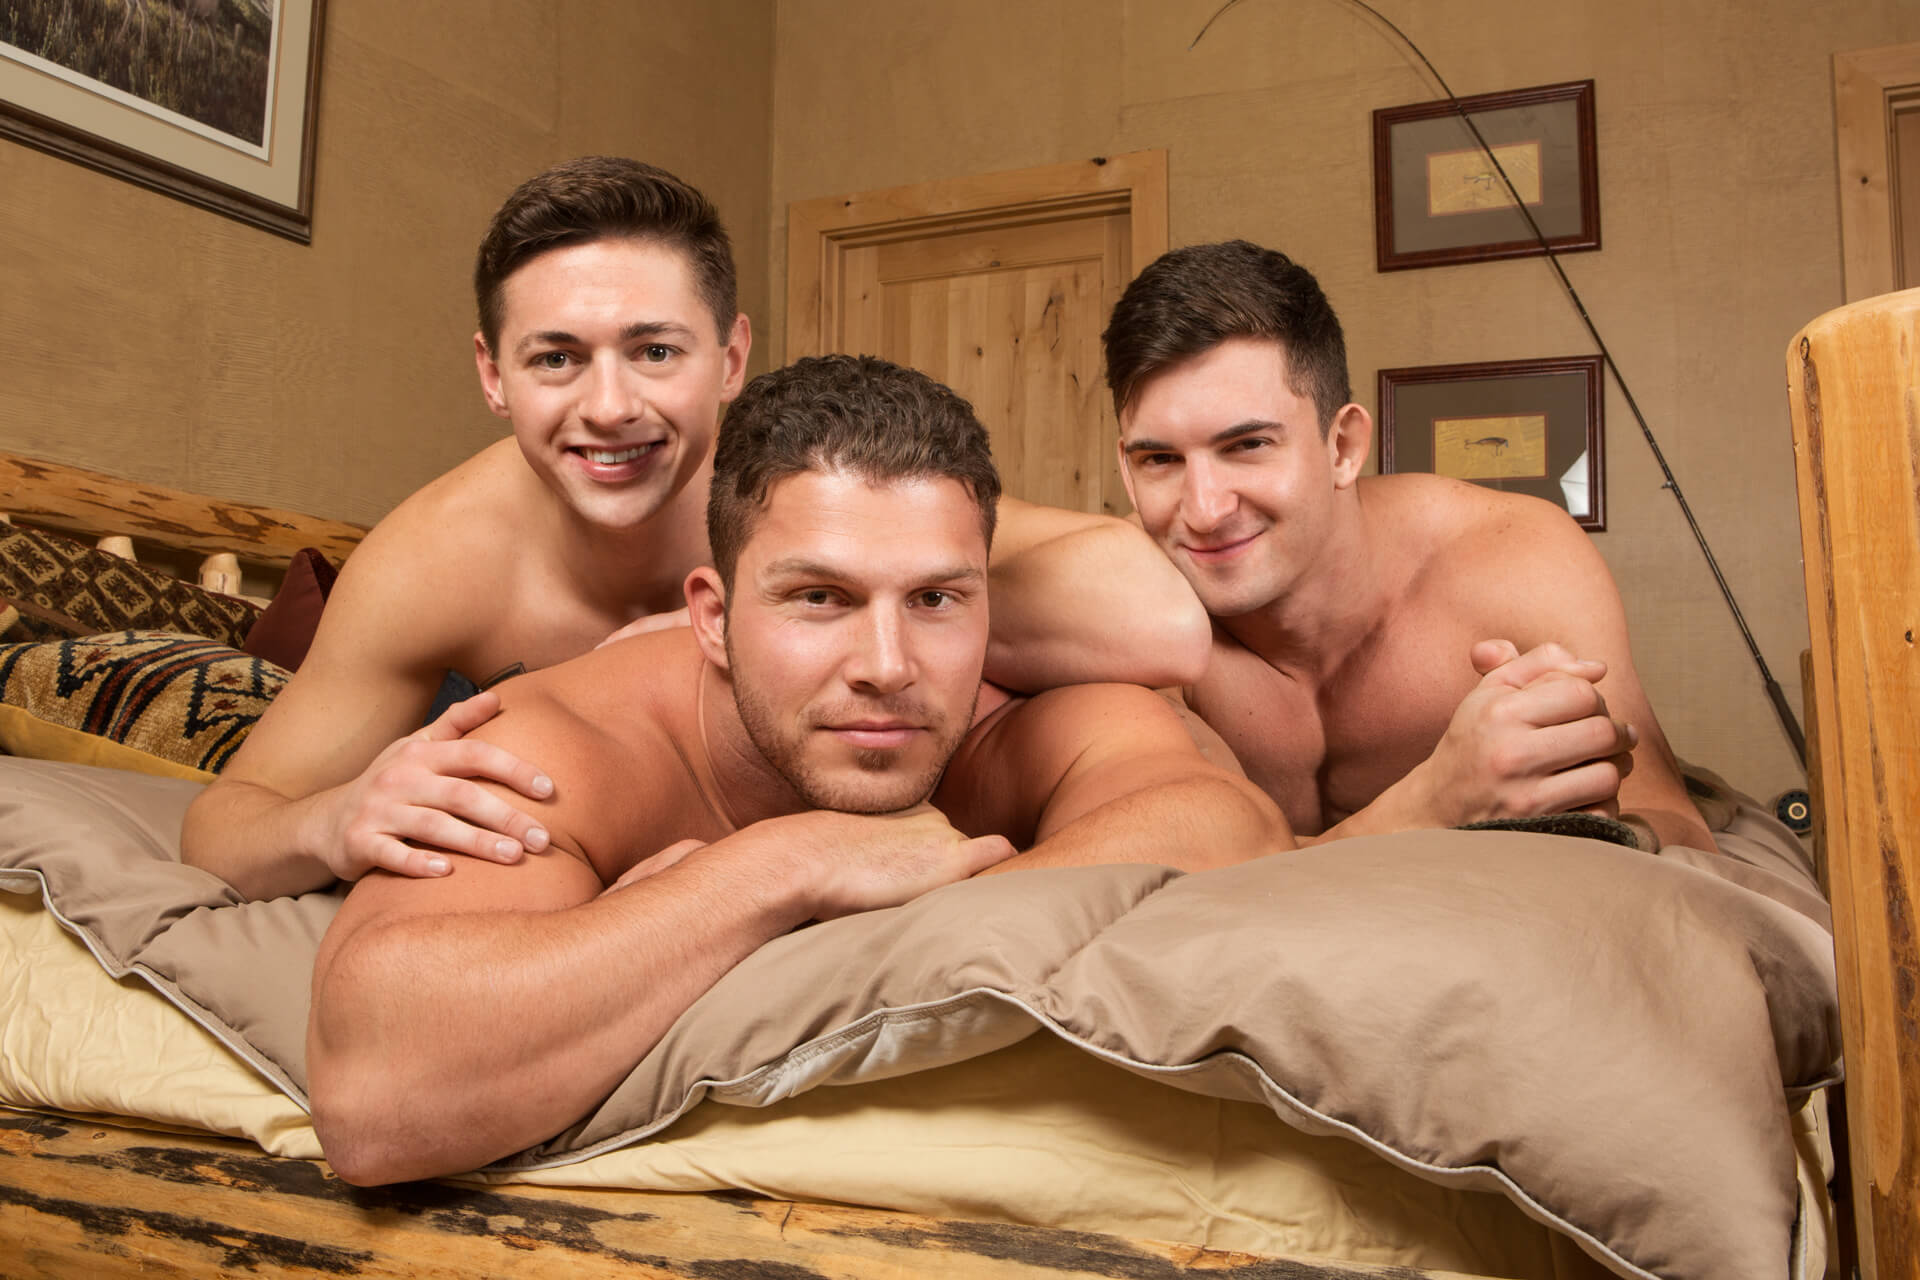 sean cody winter getaway day 2 brodie joey lane gay porn blog image 21